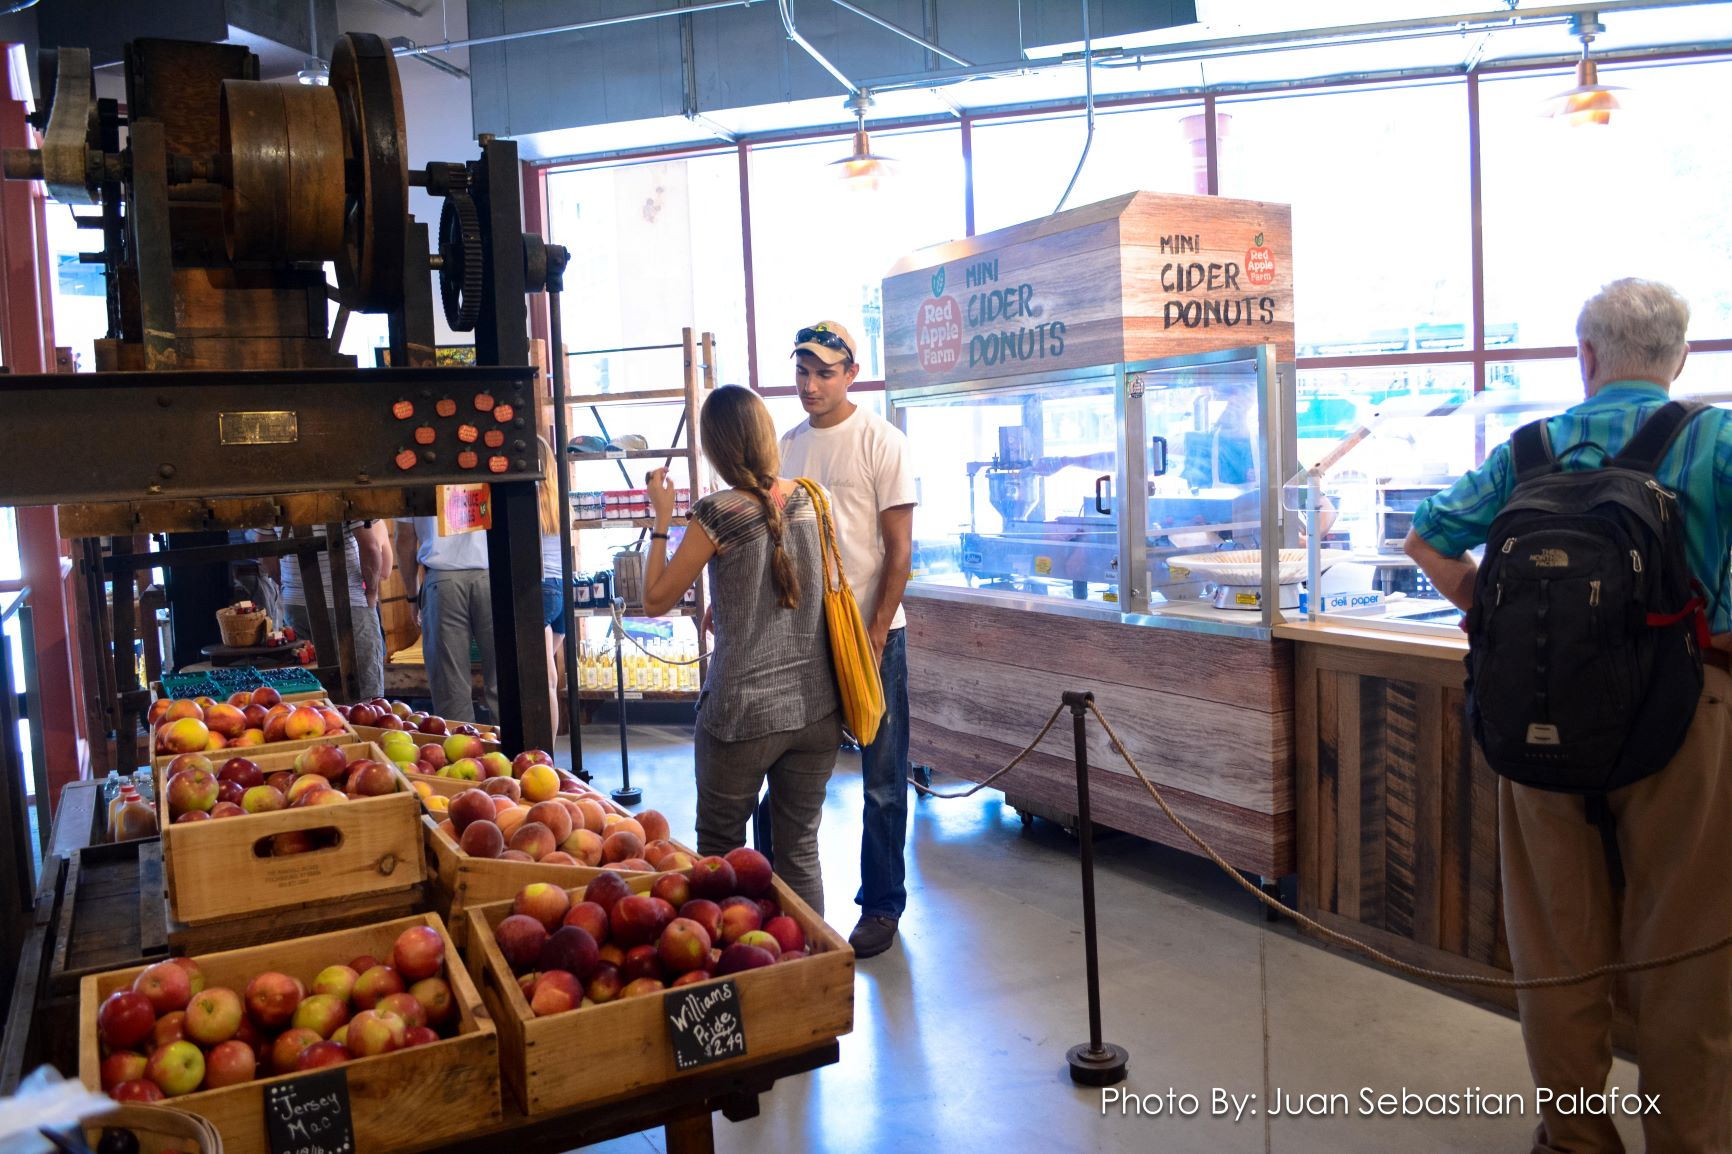 Red Apple Farm has a permament station at the Boston Public Market in Boston, Mass.